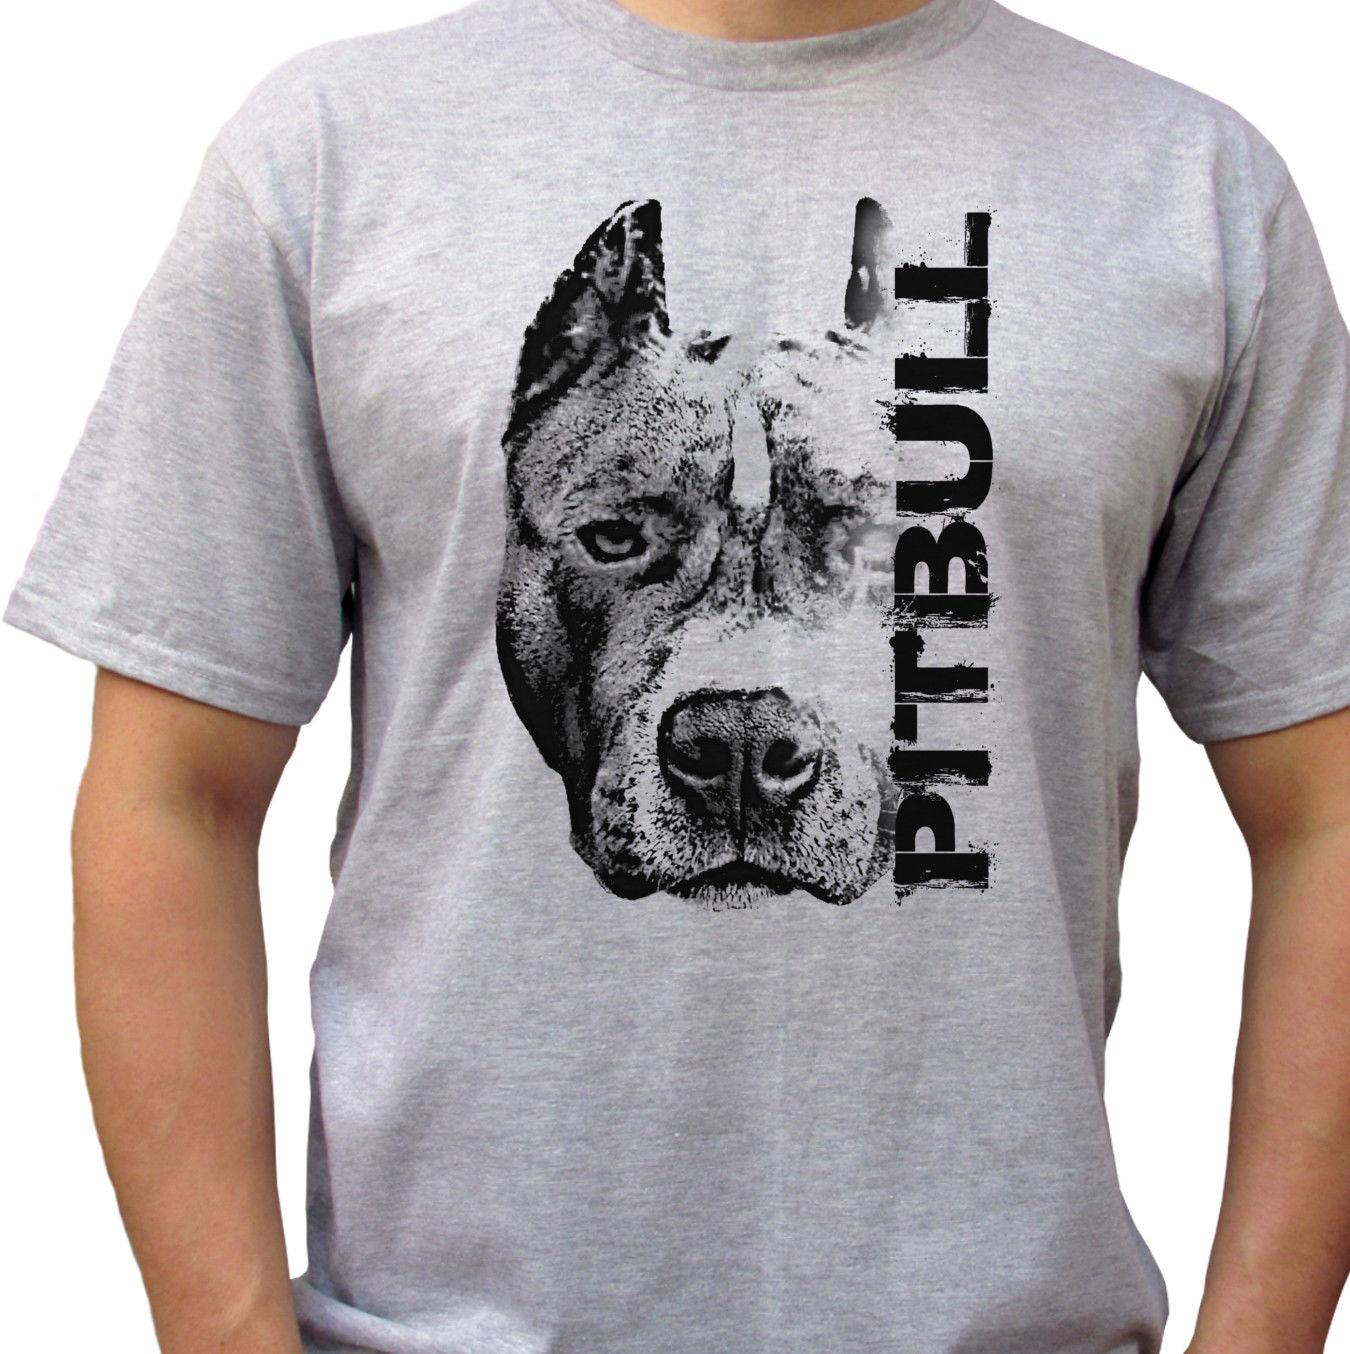 aa82f1ca8 Pitbull Head Grey T Shirt Top Pit Bull Tee Dog Design Mens Sizes Style  Round Style Tshirt White T Shirt Design T Shirt Deals From Goodcup, $16.24|  DHgate.